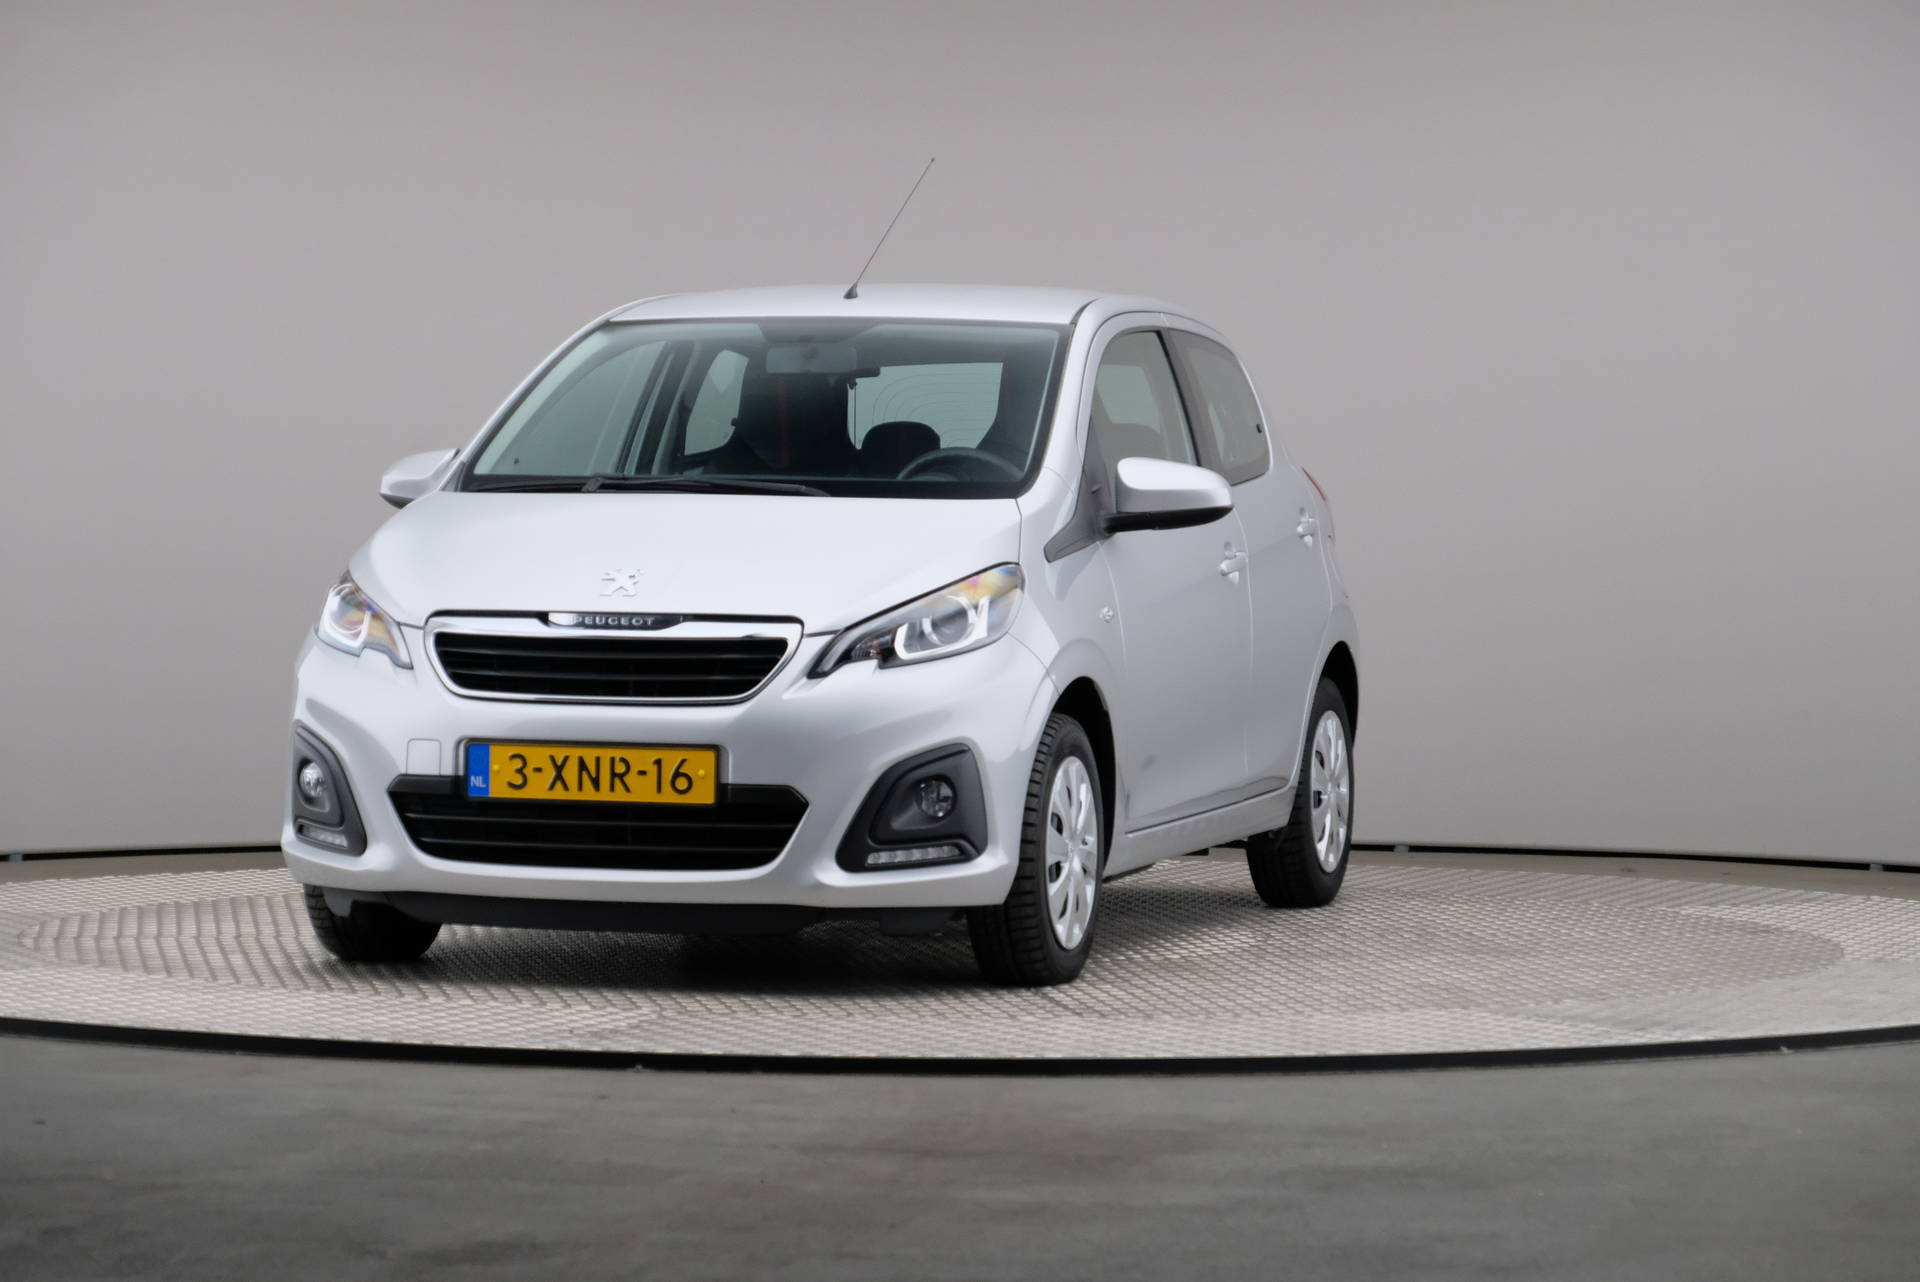 Peugeot 108 1.0 e-VTi Blue Lease, Airconditioning, 360-image34